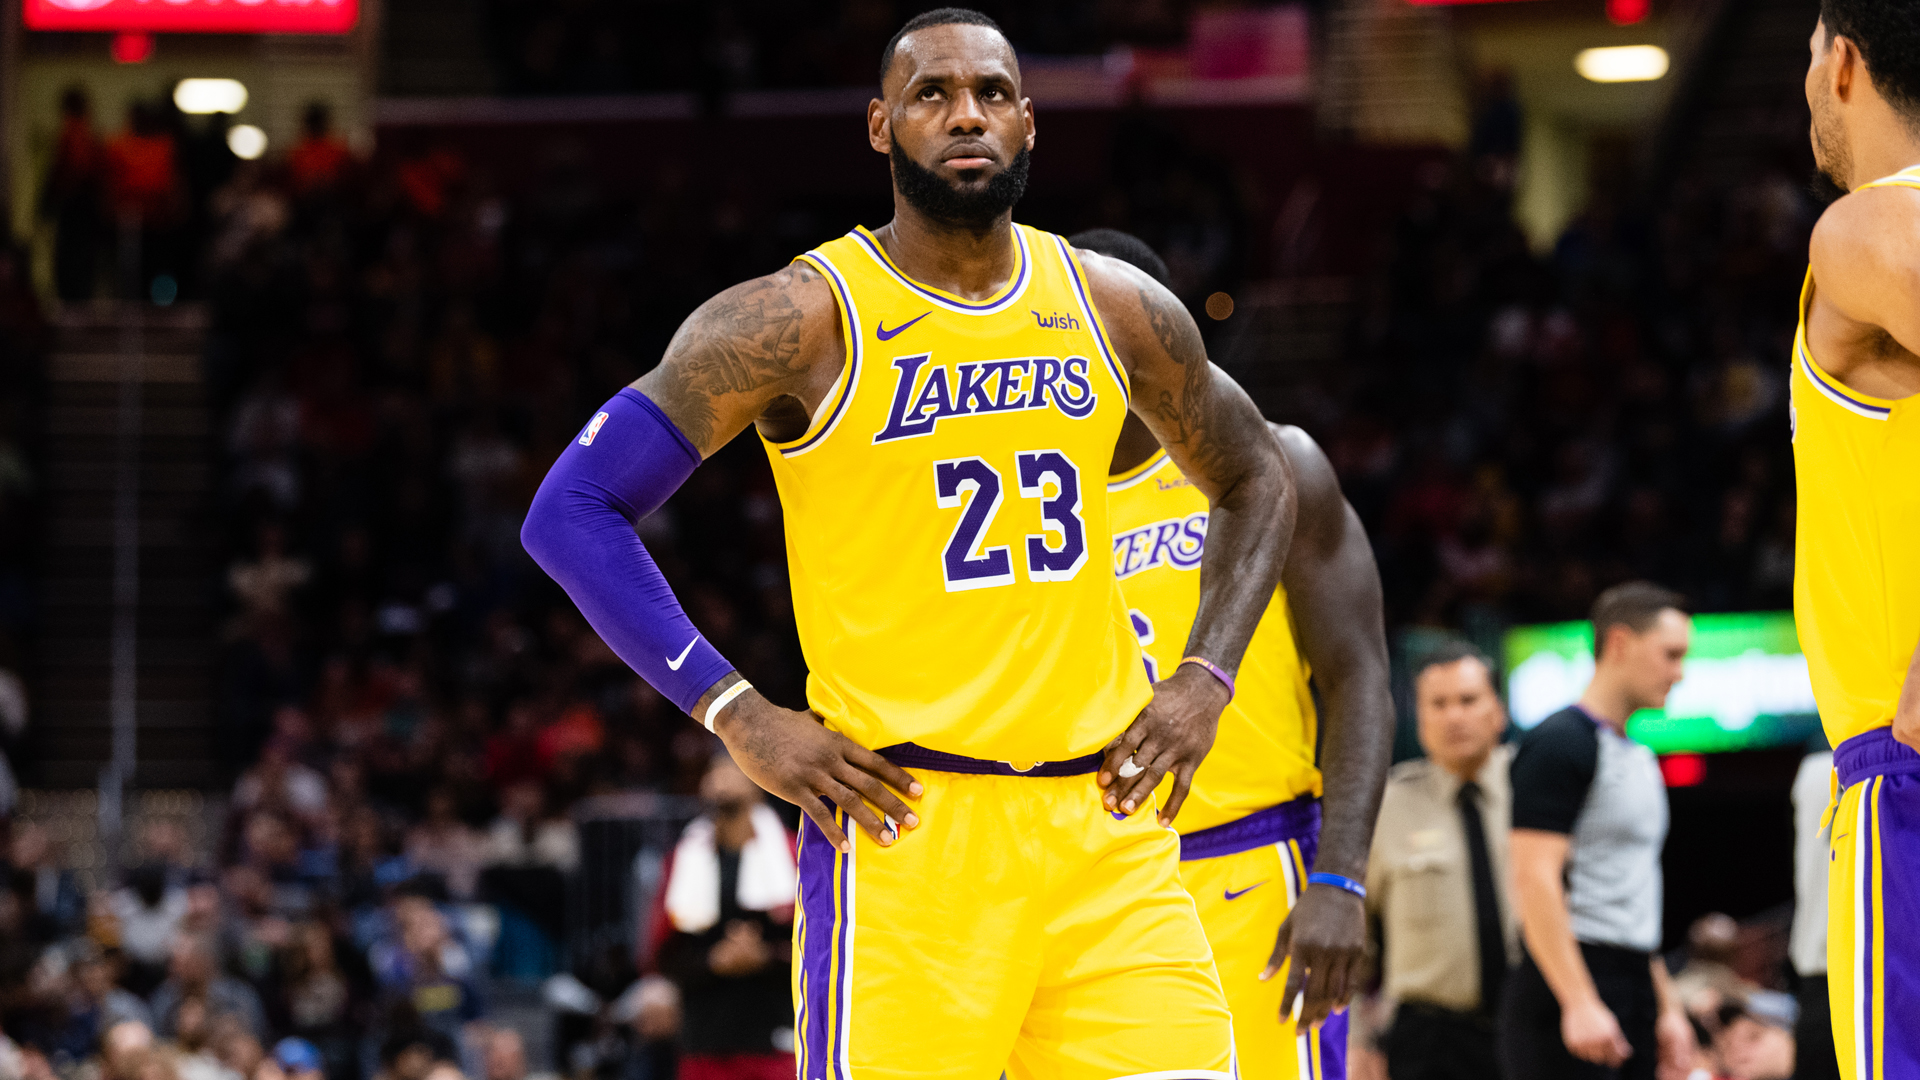 LeBron James not worried about playoffs after Lakers loss